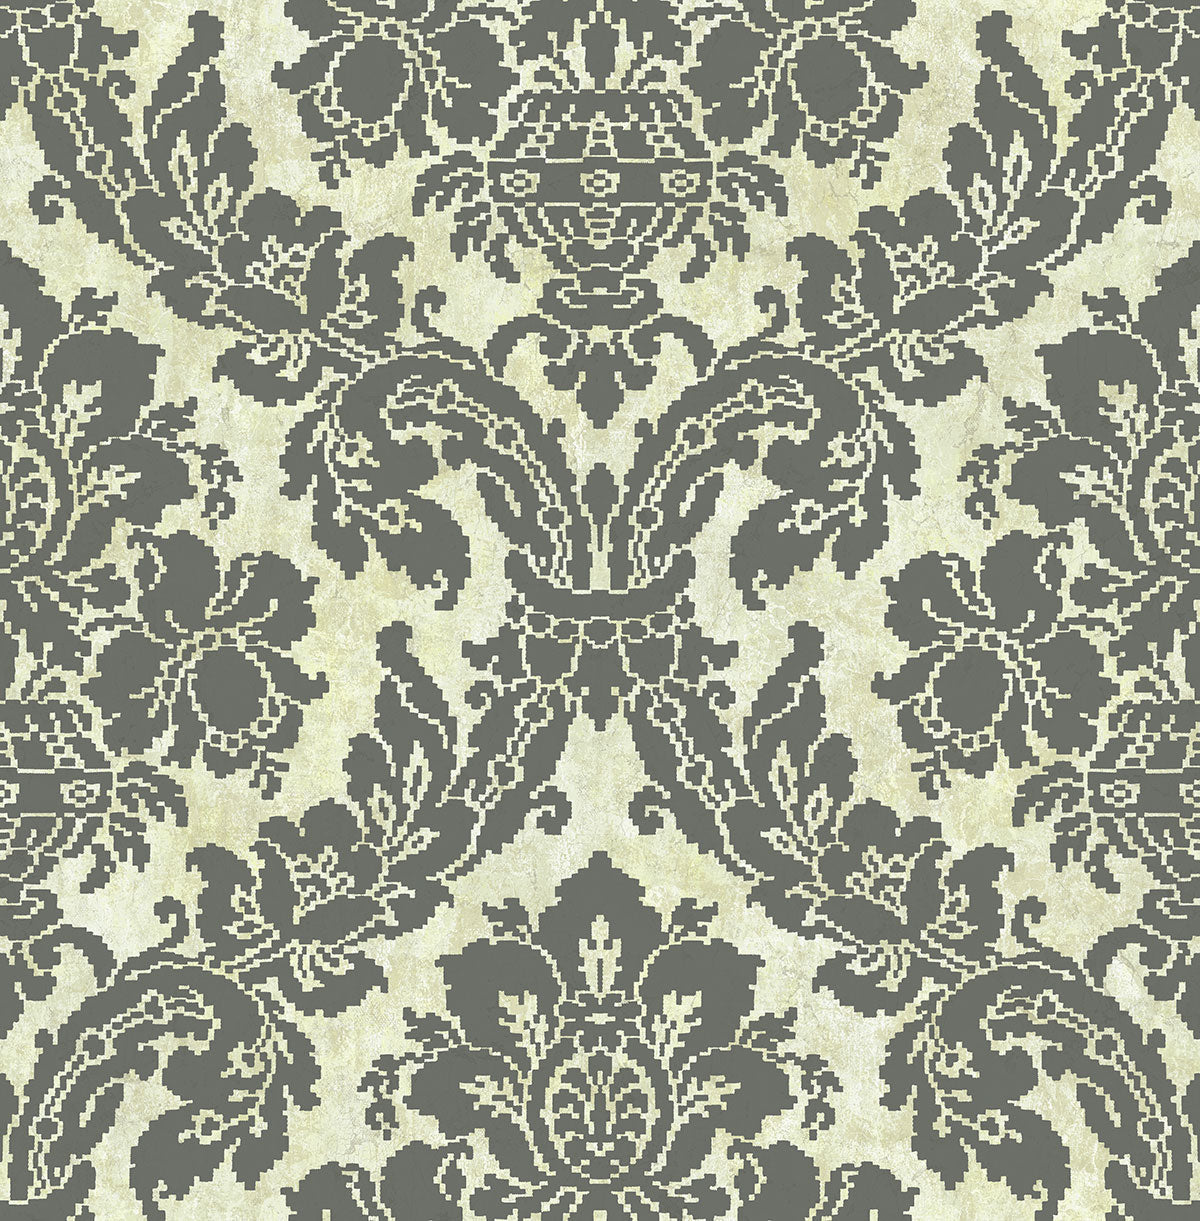 Wallpaper Classic Jacobean Floral in Warm Tones with Gold Wash Background